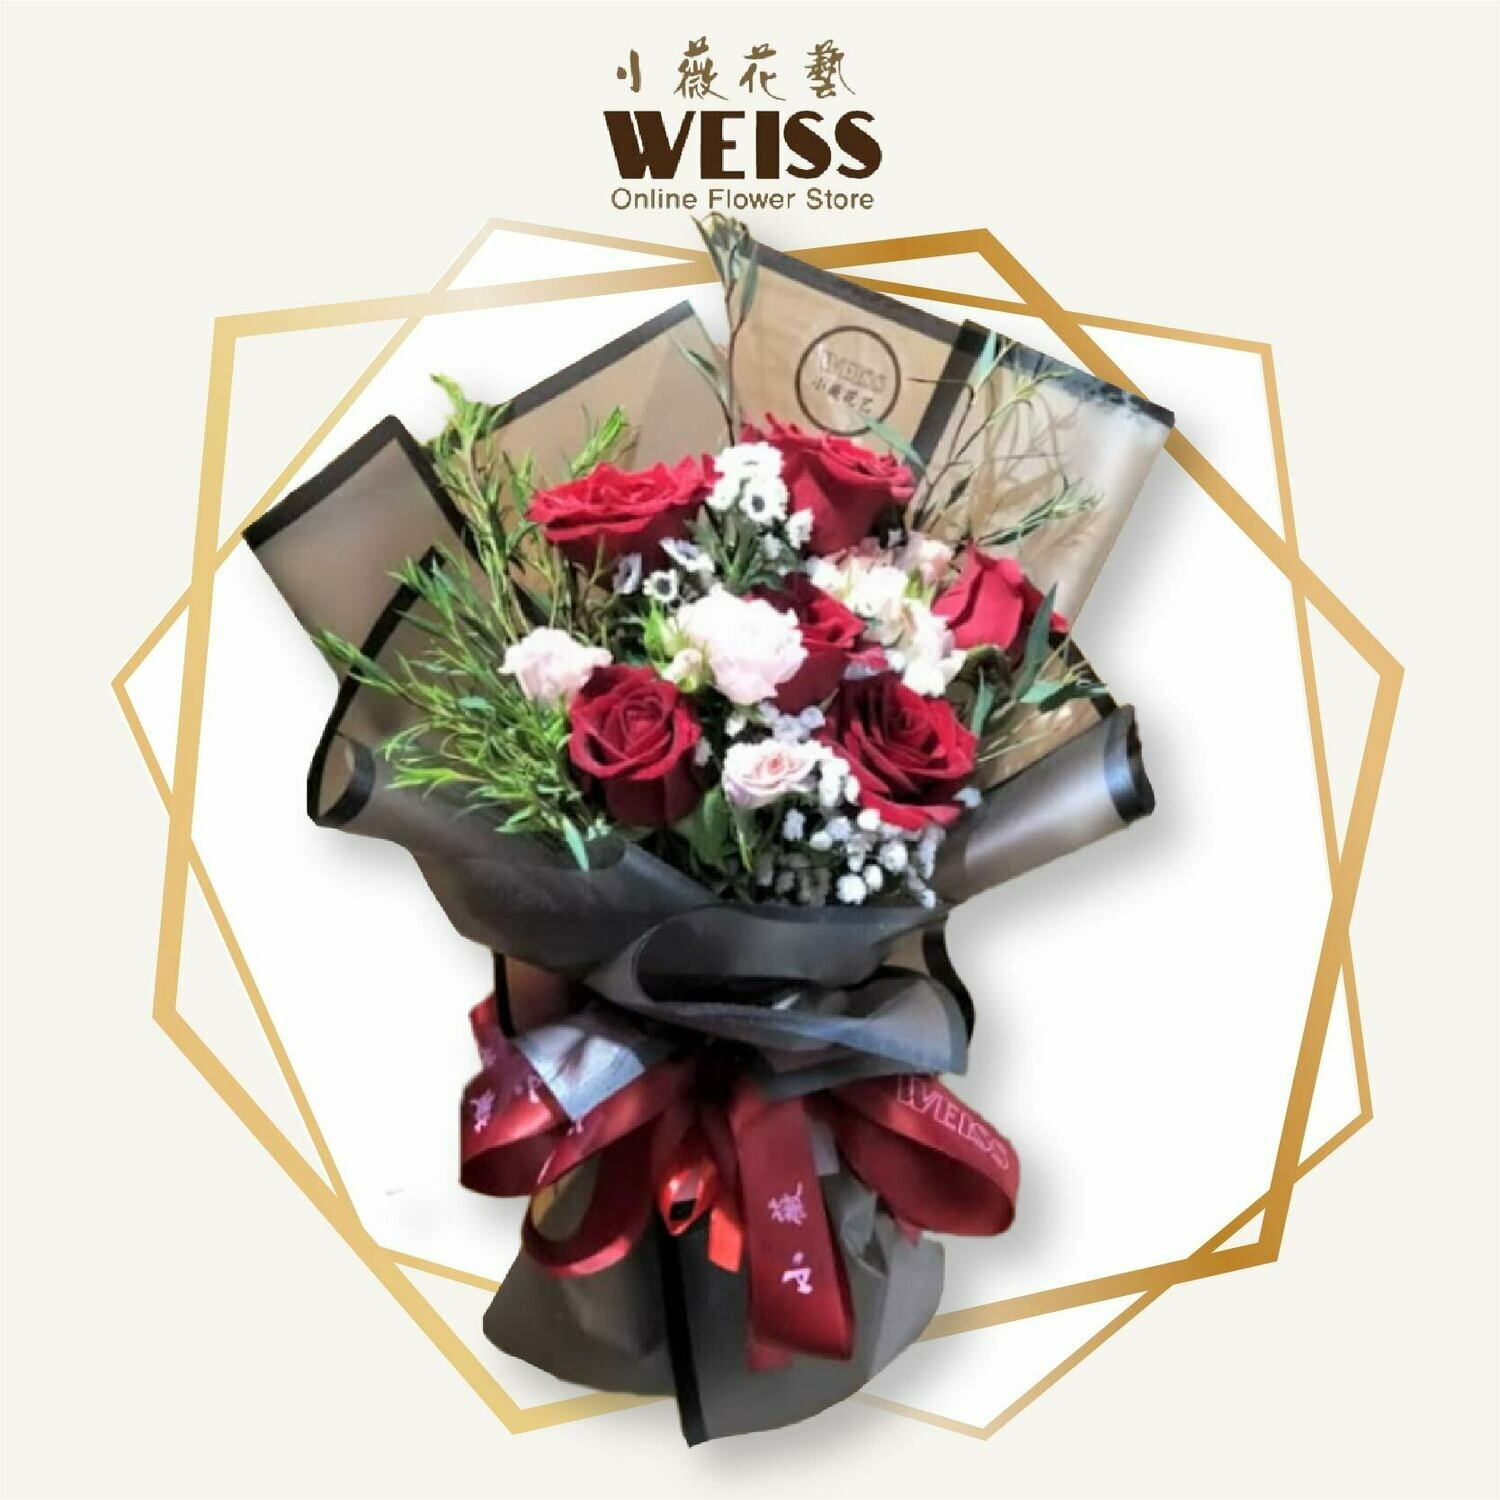 Weiss Florist 6stk red roses (Free Shipping! Only deliver in JB)